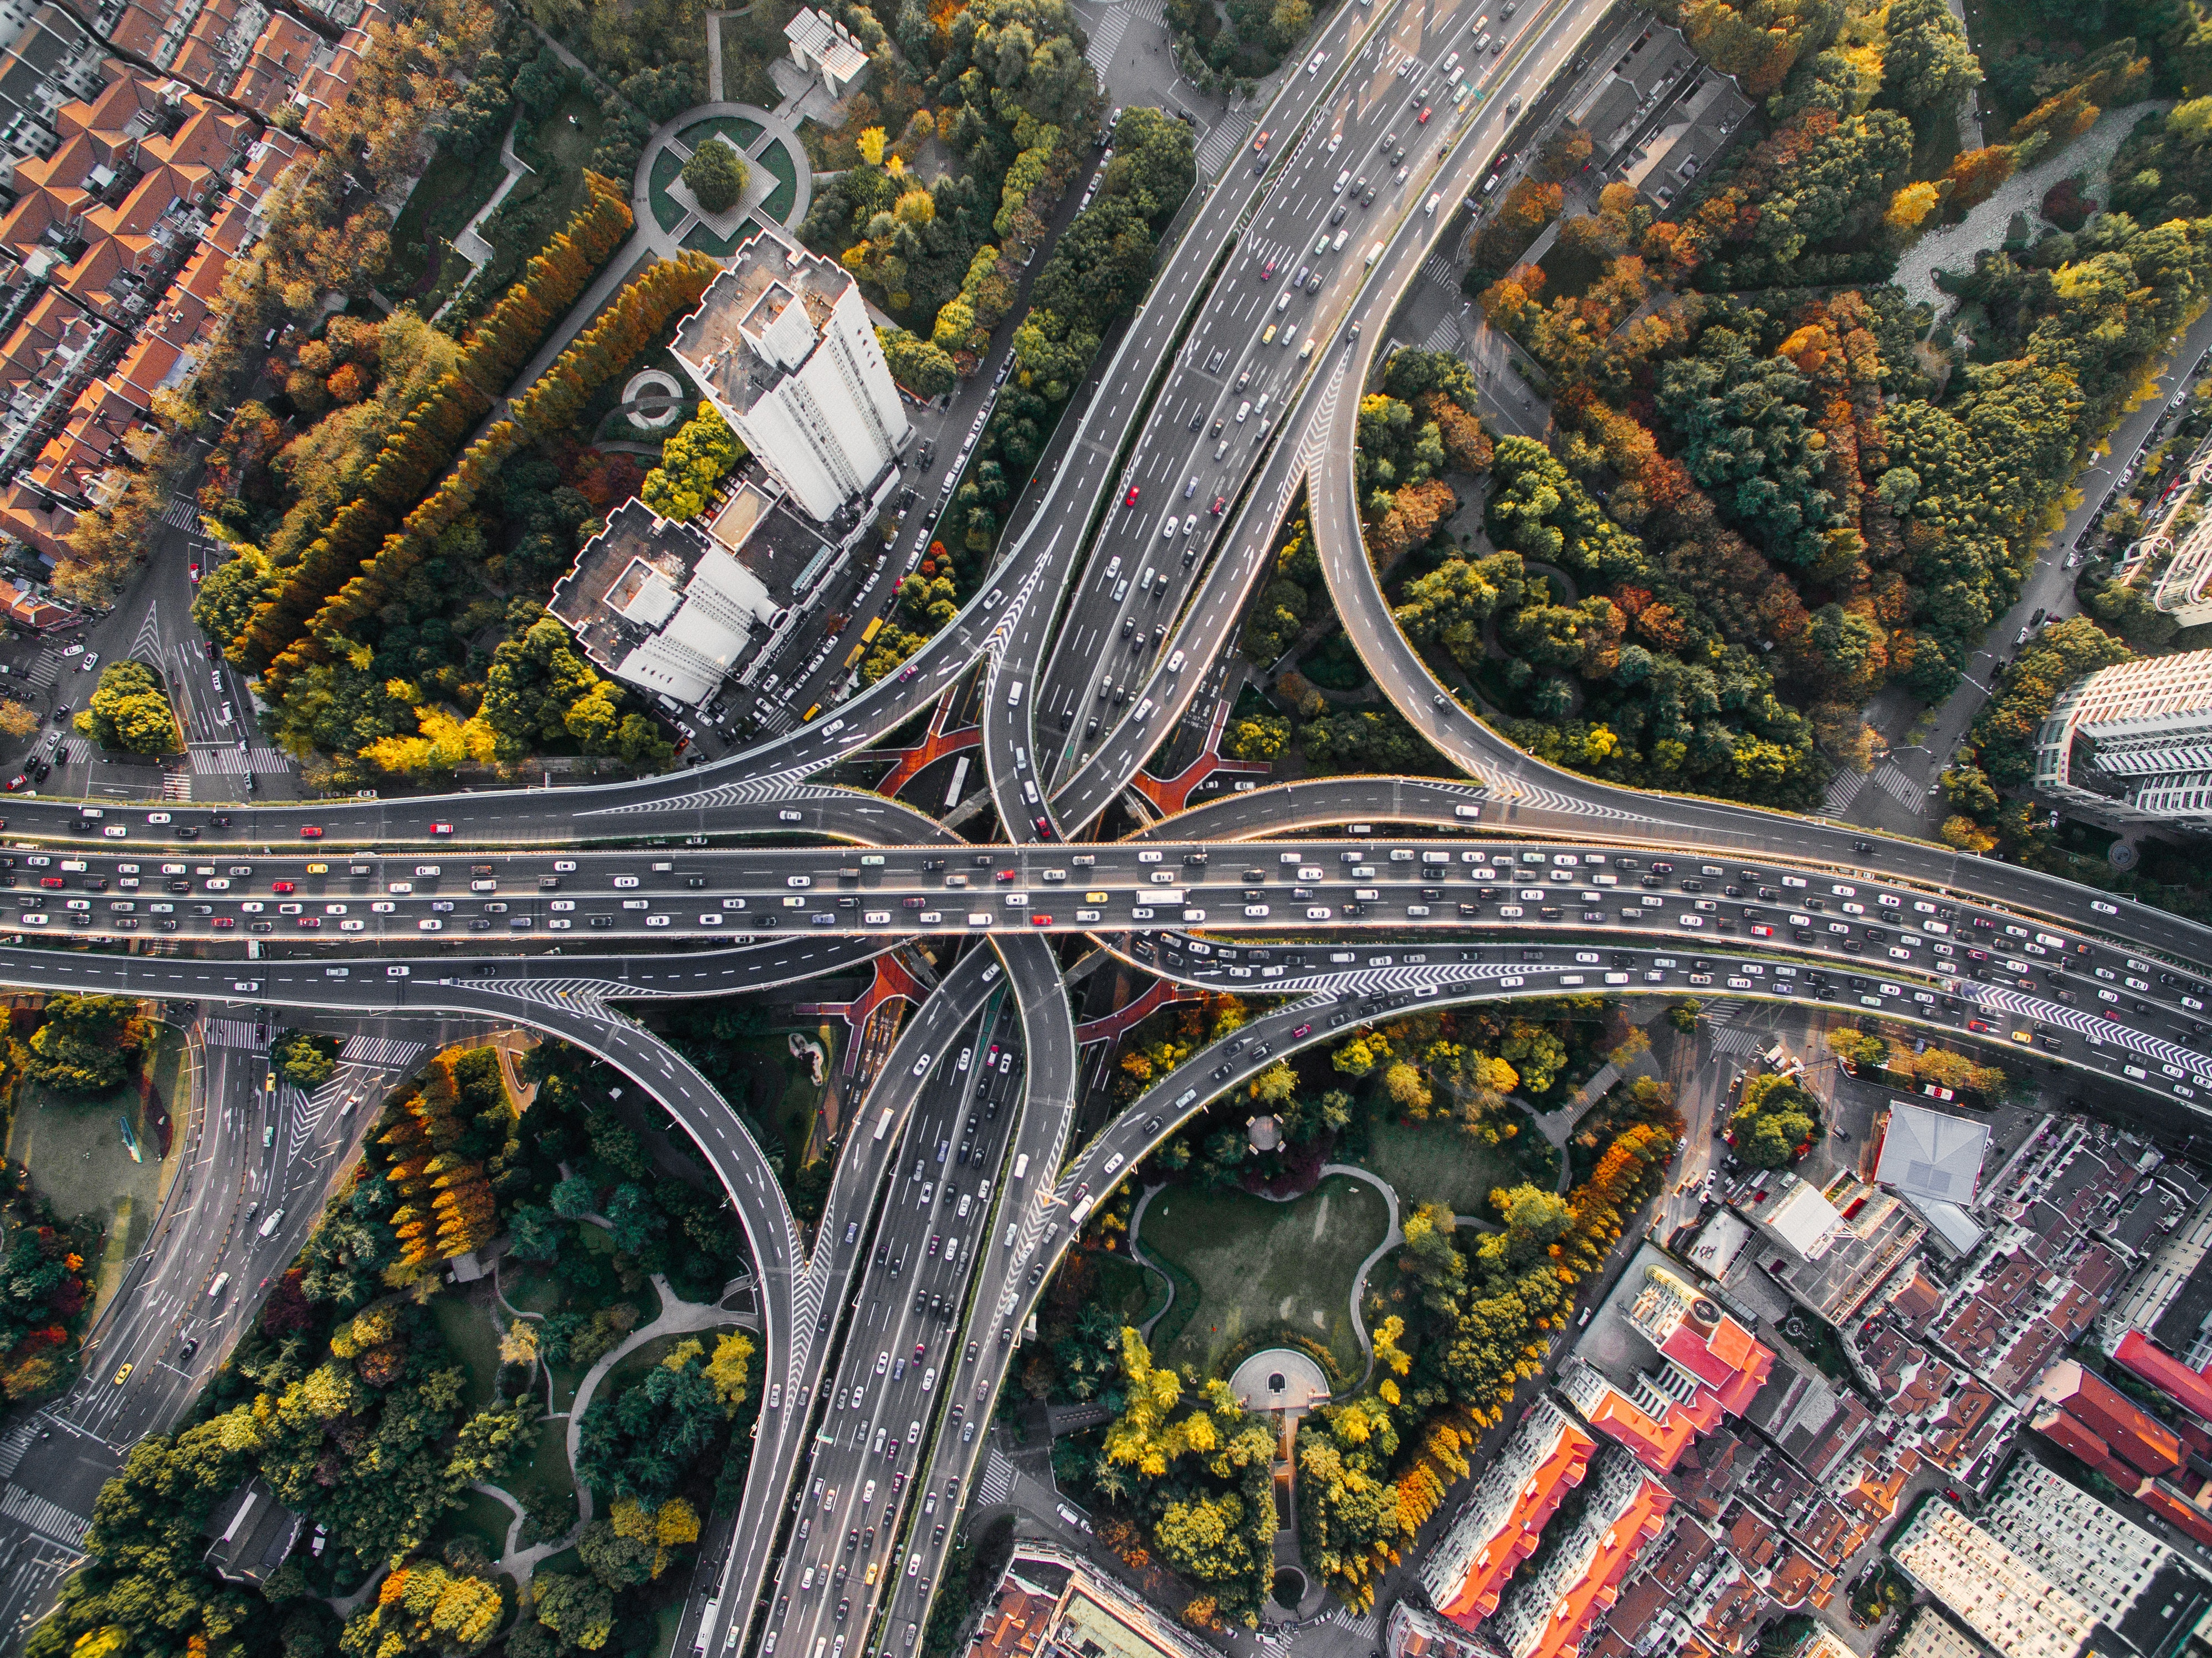 Aerial view of freeways intersecting